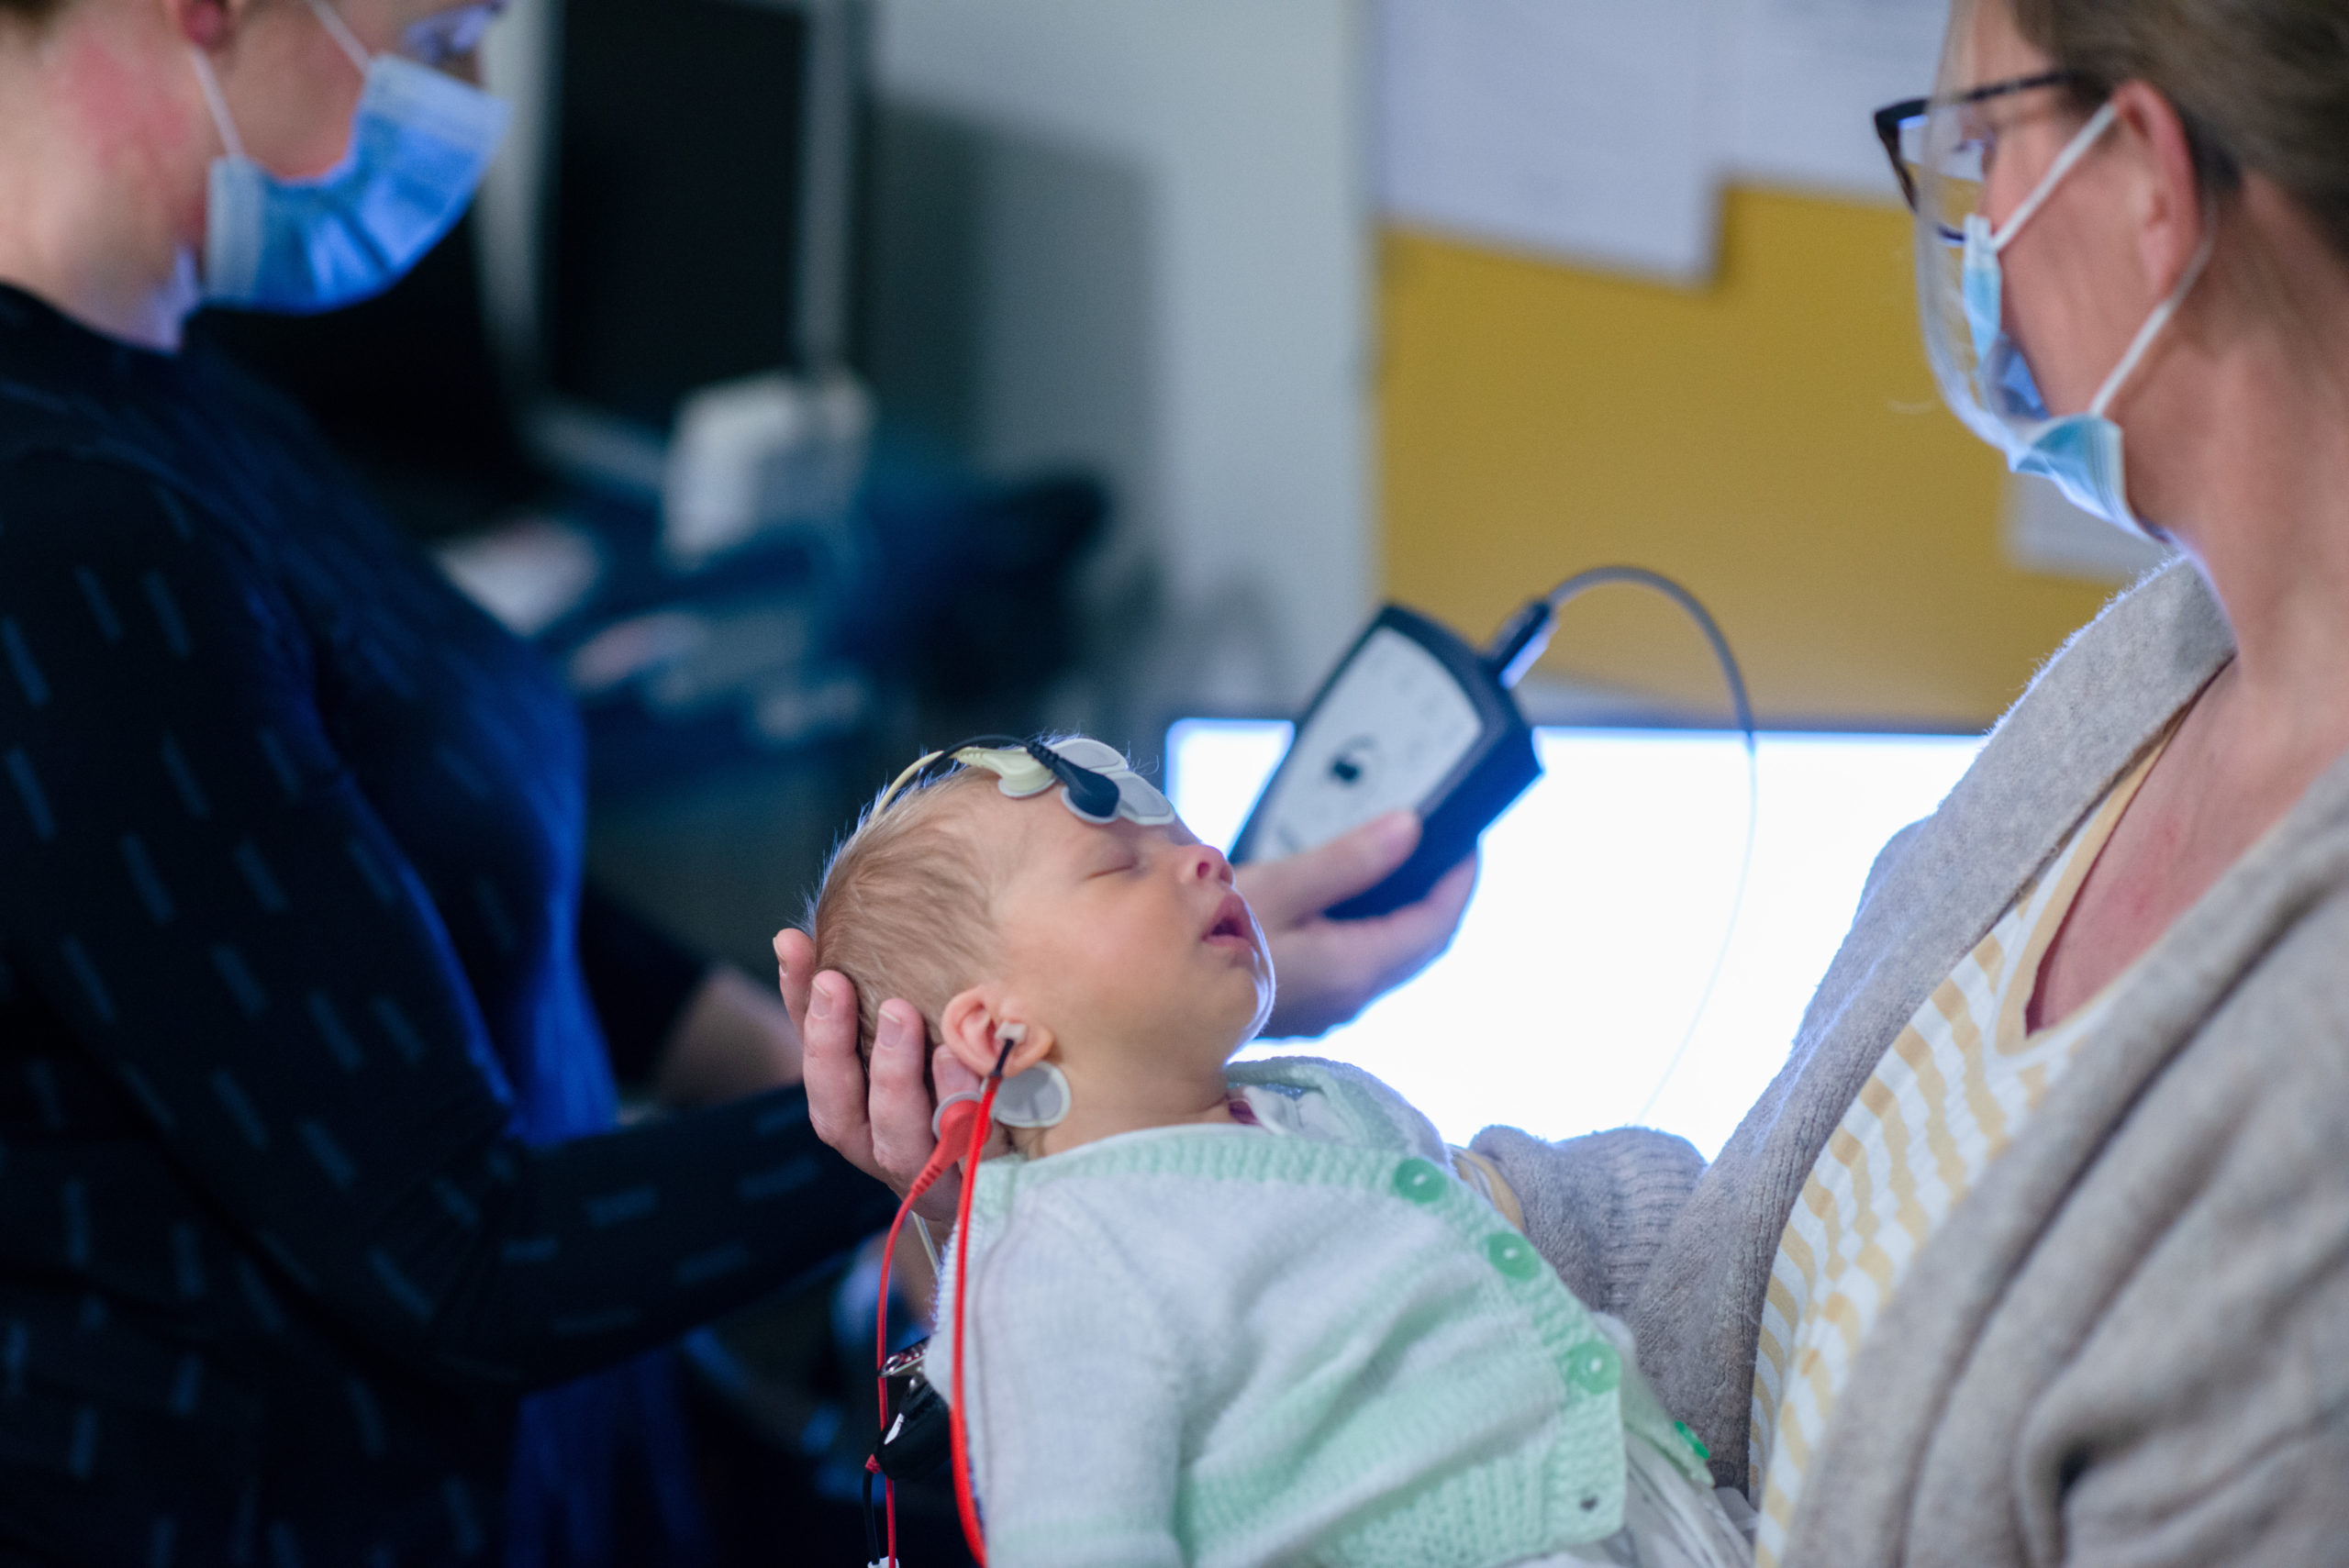 Six-week-old Alba Rowe having her hearing testing with the new Auditory Brainstem Response Equipment